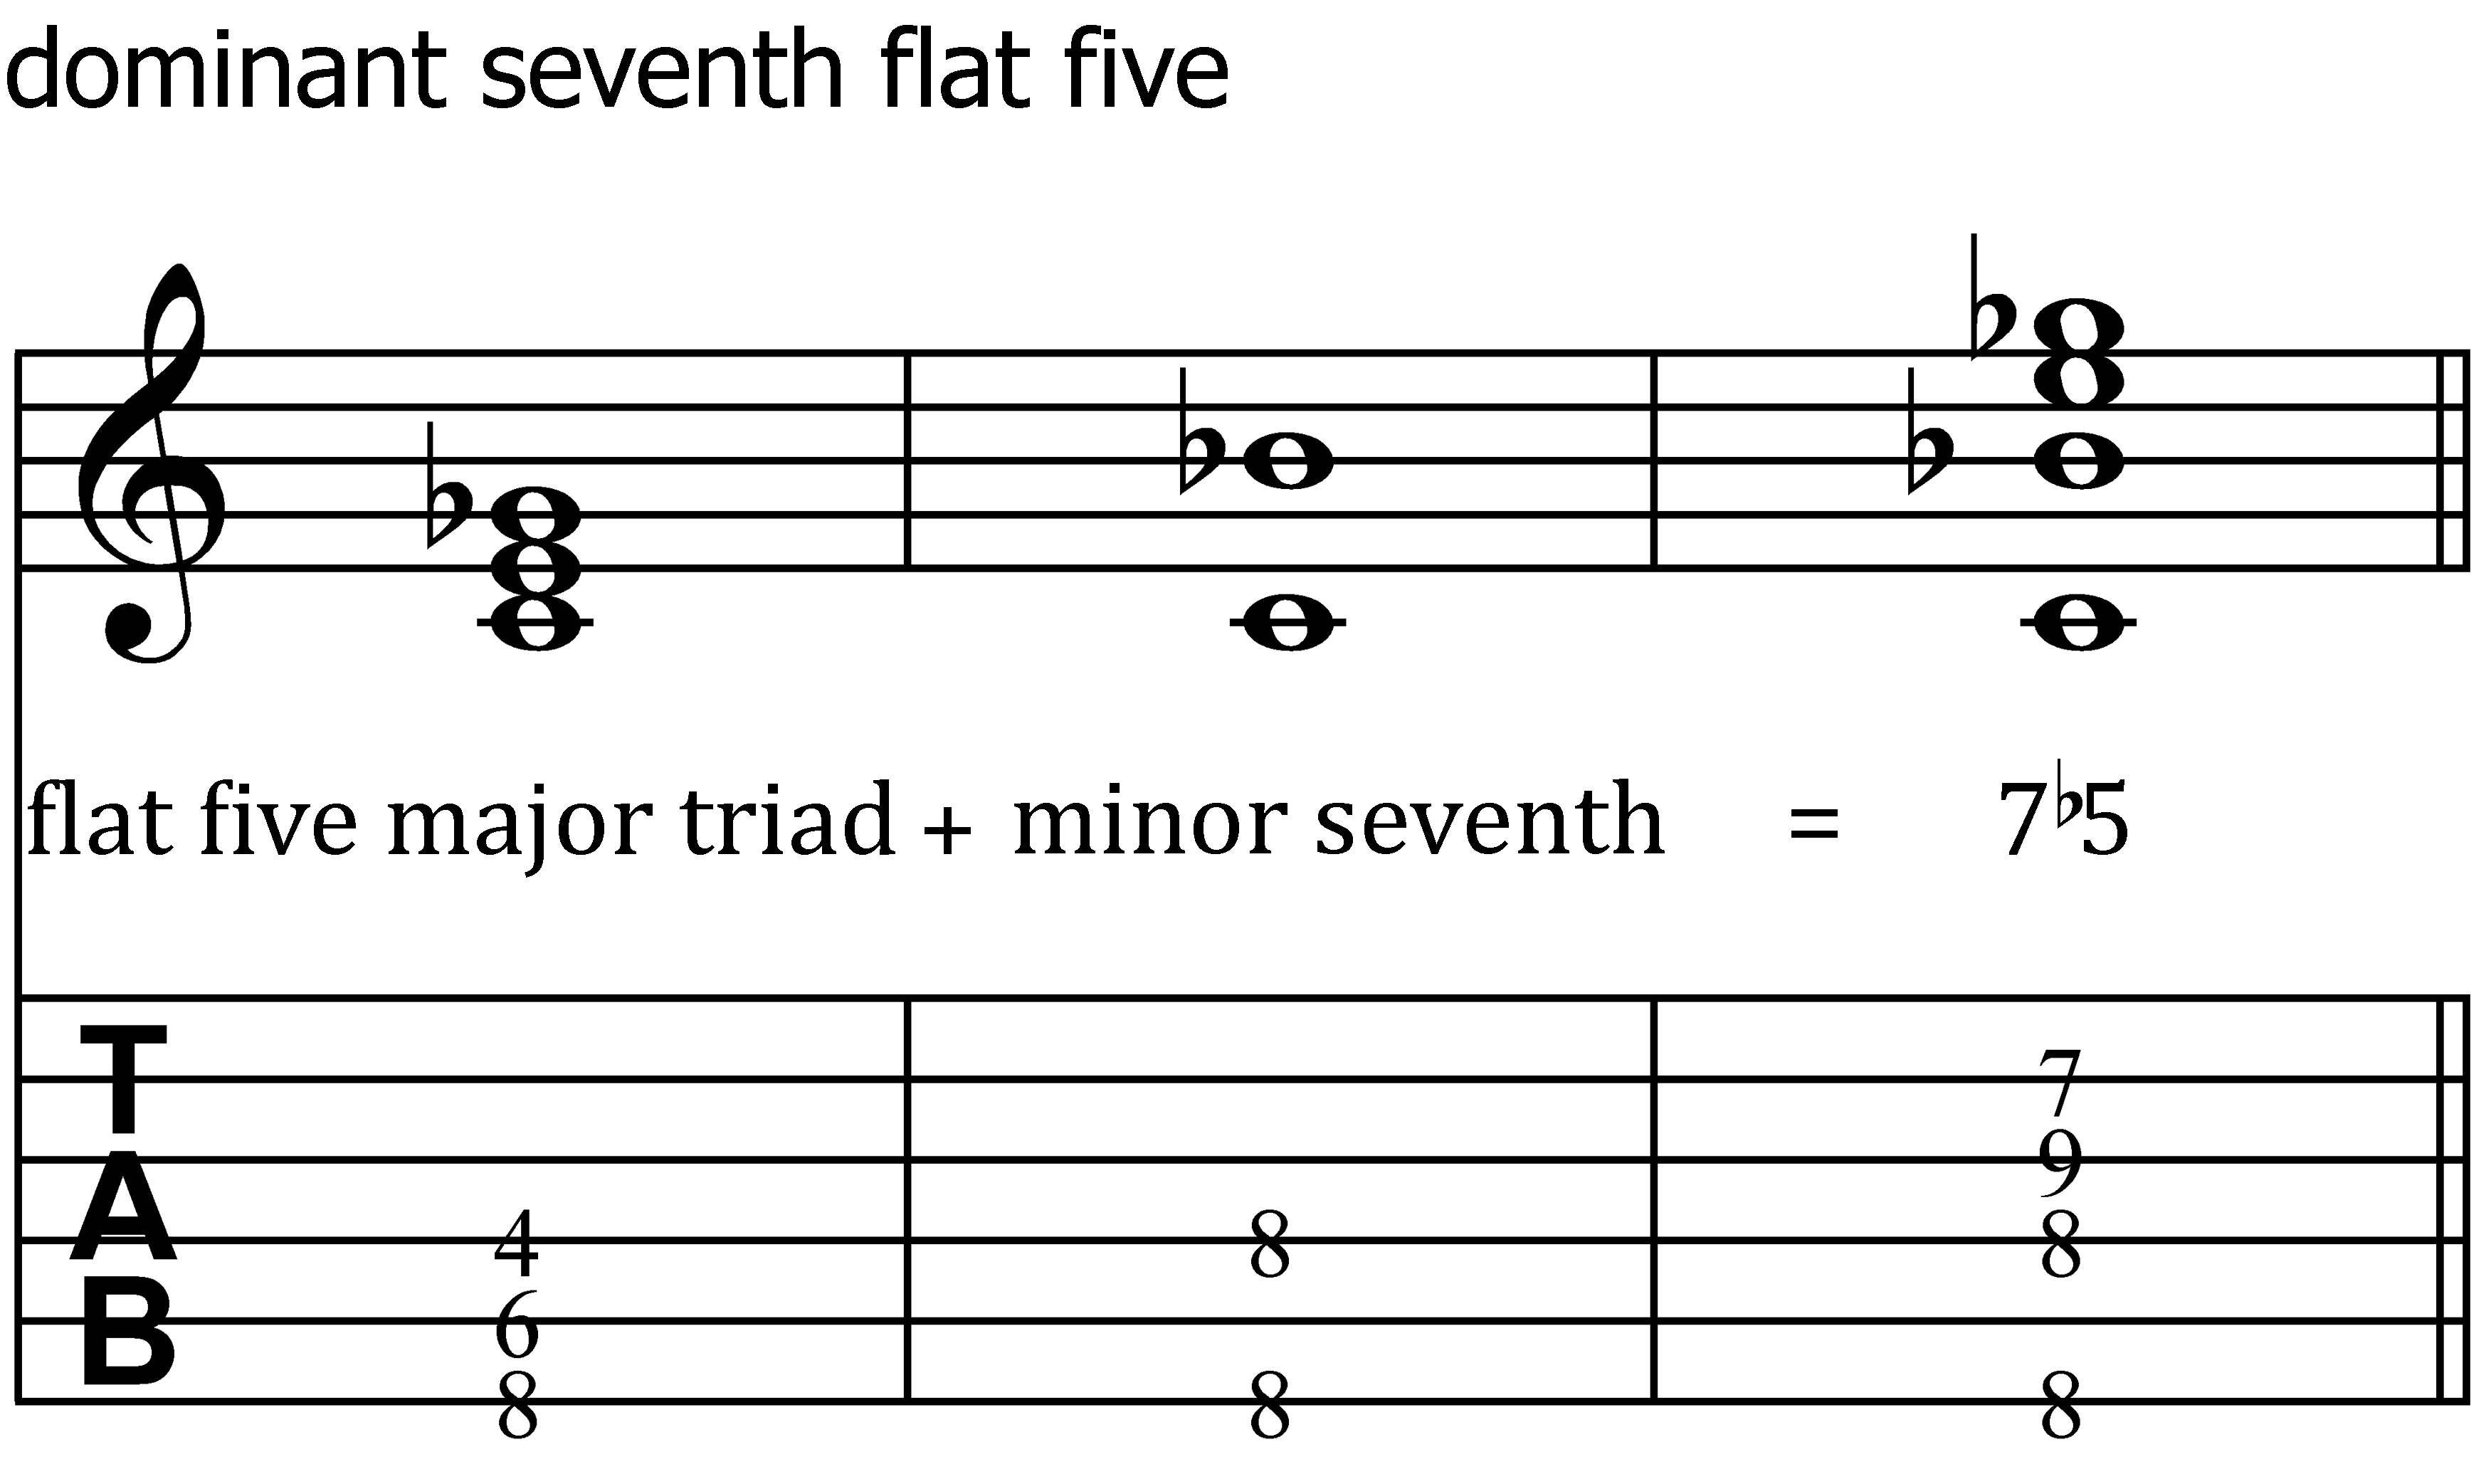 Fully diminished seventh chord vs half diminished seventh chord